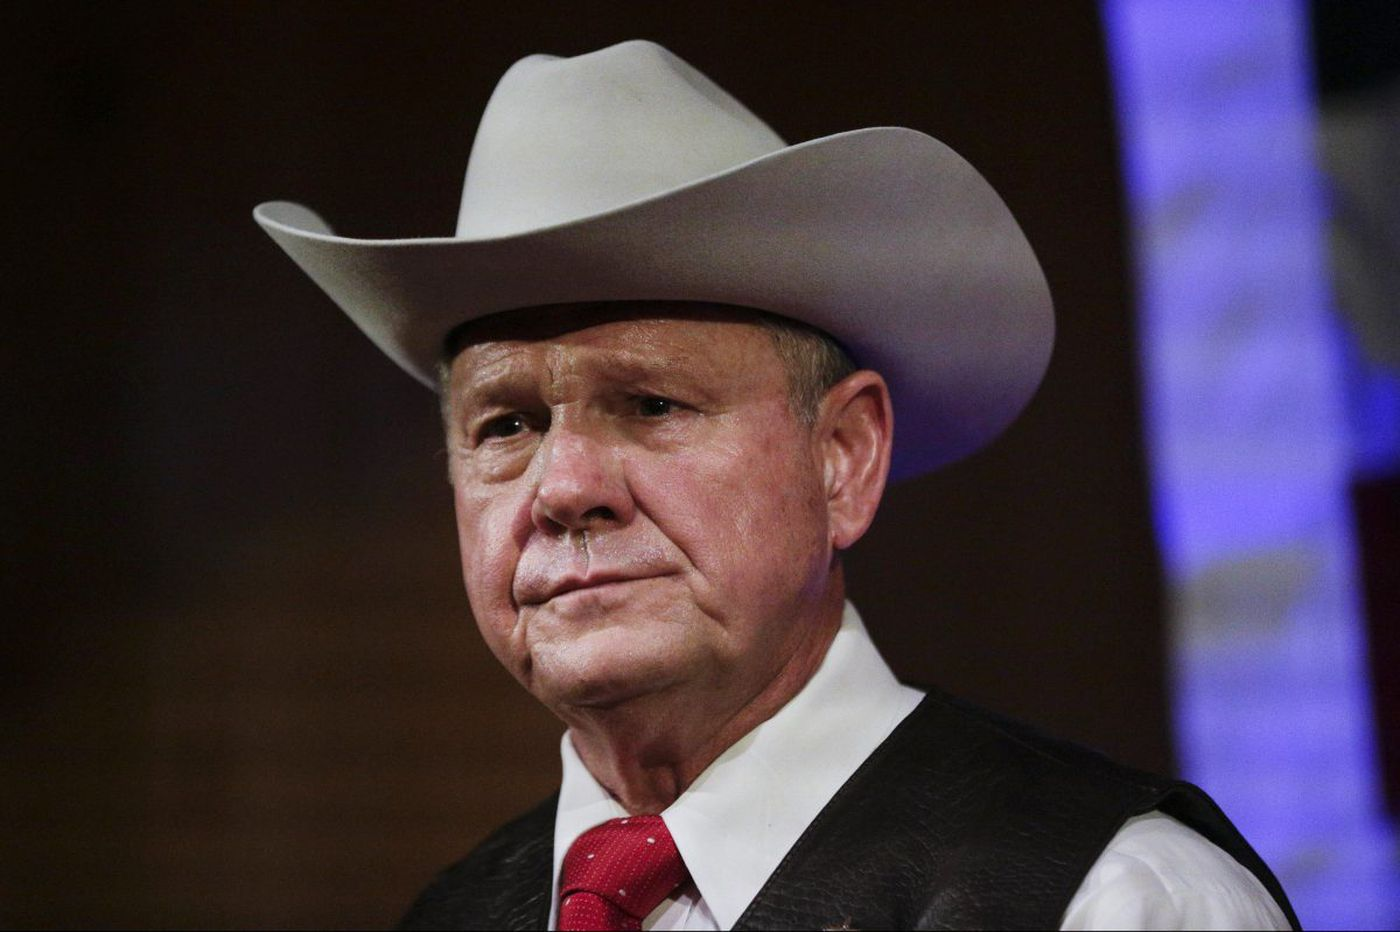 Alabama state official defends Moore, citing Joseph and Mary: 'They became parents of Jesus'